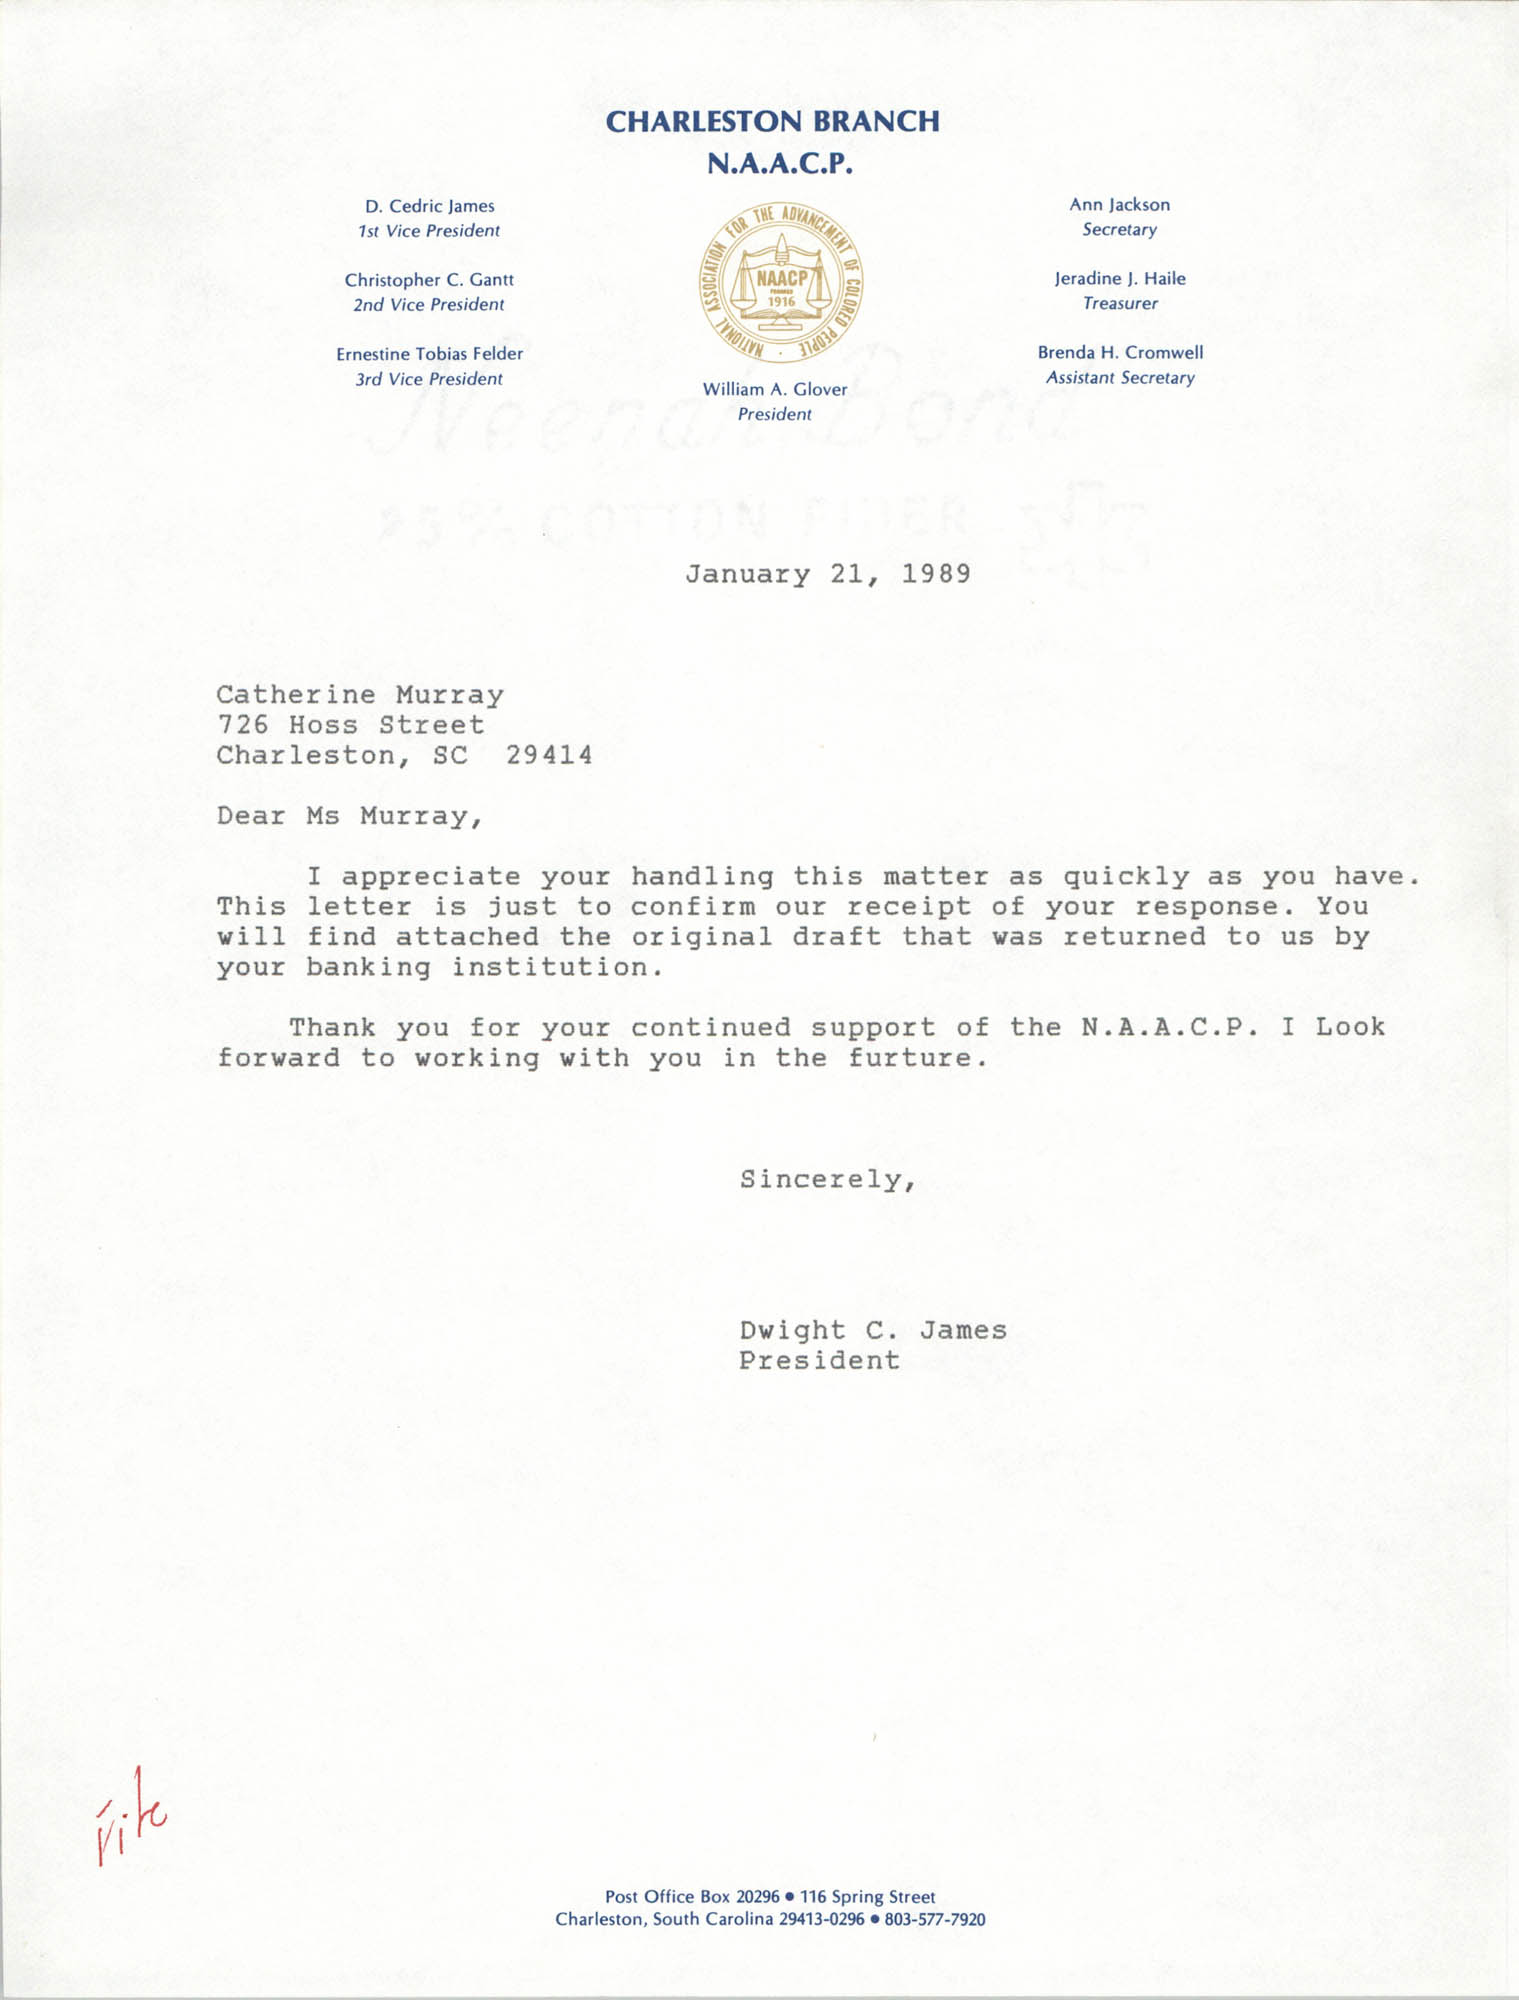 Letter from Dwight C. James to Catherine Murray, January 21, 1989